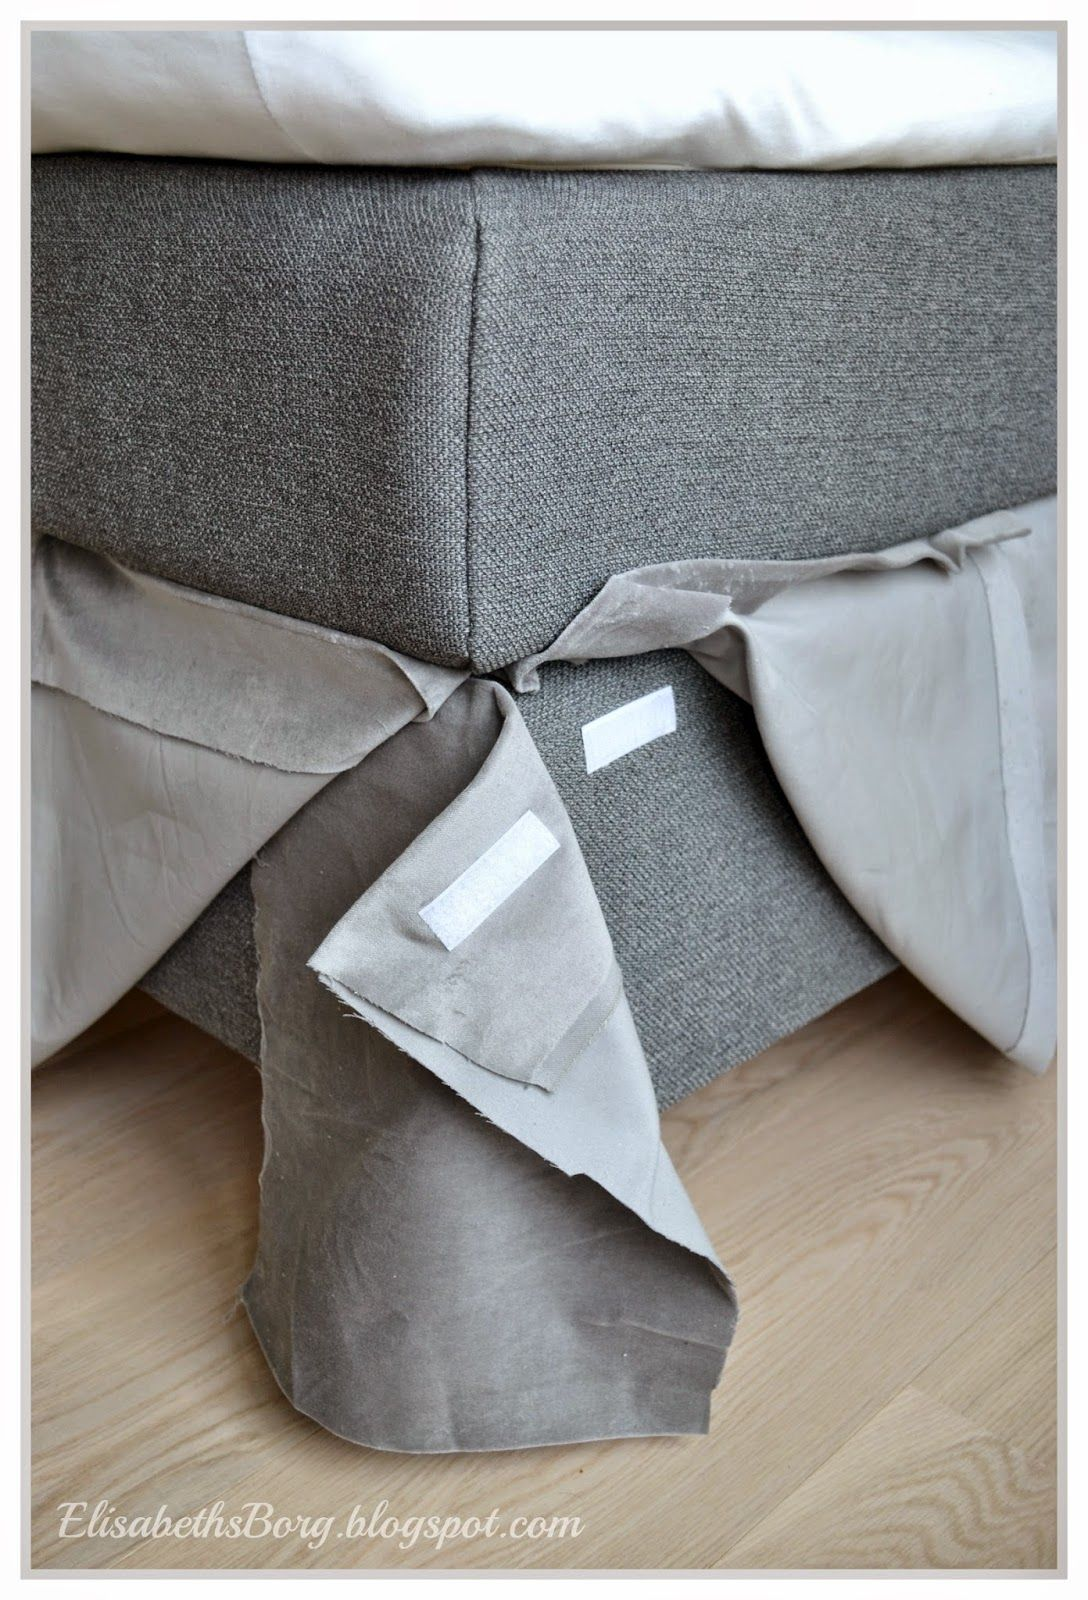 DIY: Bed Sheath without sewing | Cleaning fixes and others ...